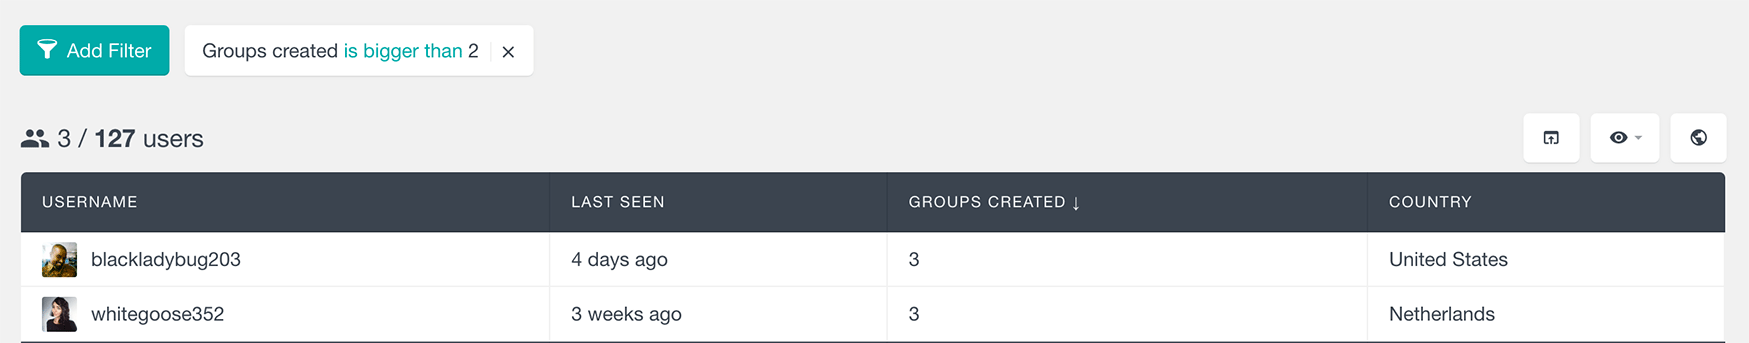 buddypress groups filter by number of groups created